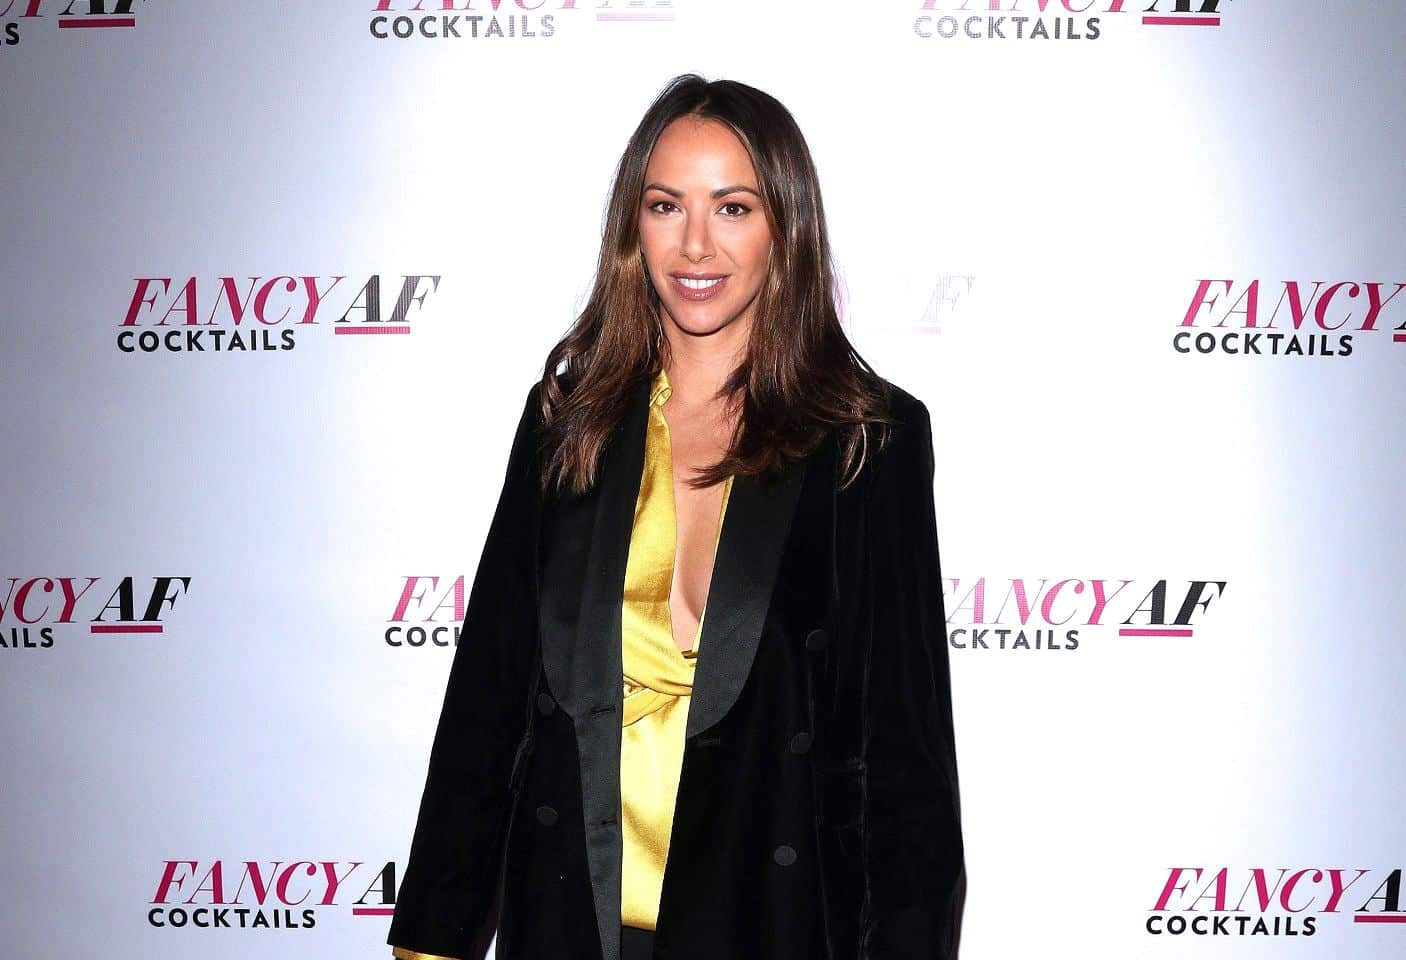 "Kristen Doute ""Nervous"" About If She'll Be Able to Get Pregnant, Ex Vanderpump Rules Star Expresses Frustrations After Doctor's Appointment Didn't Go as Planned and Reveals If She's Ready for a Baby Now"